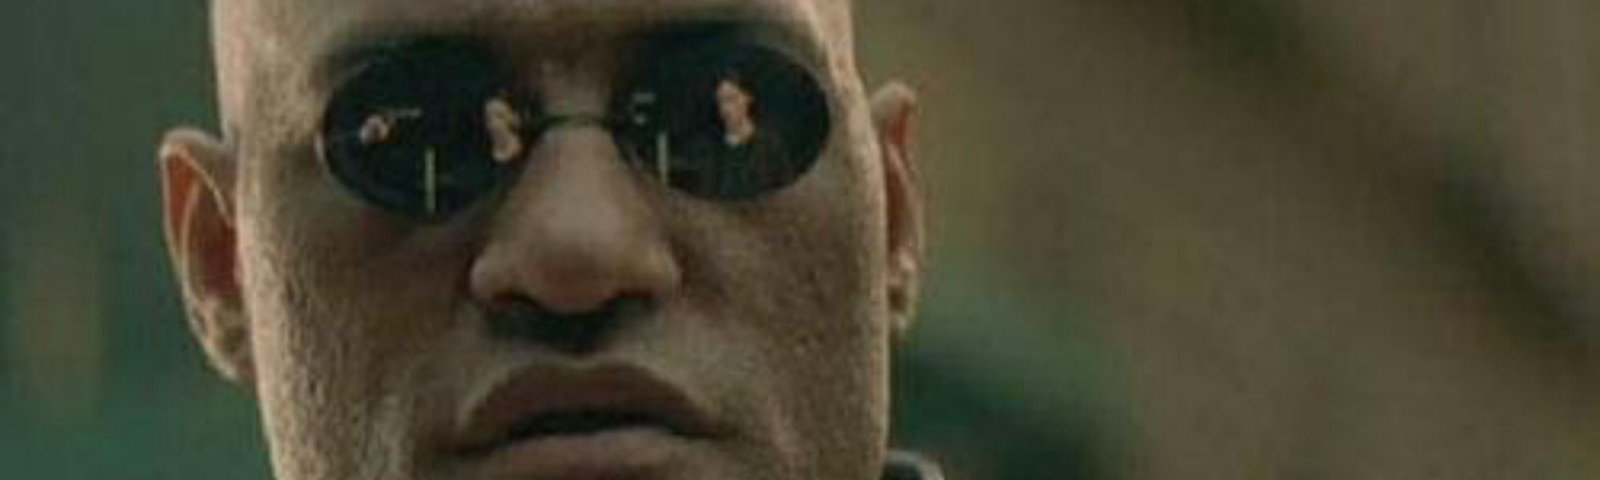 Morpheus from the Matrix staring into the camera with black sunglasses on